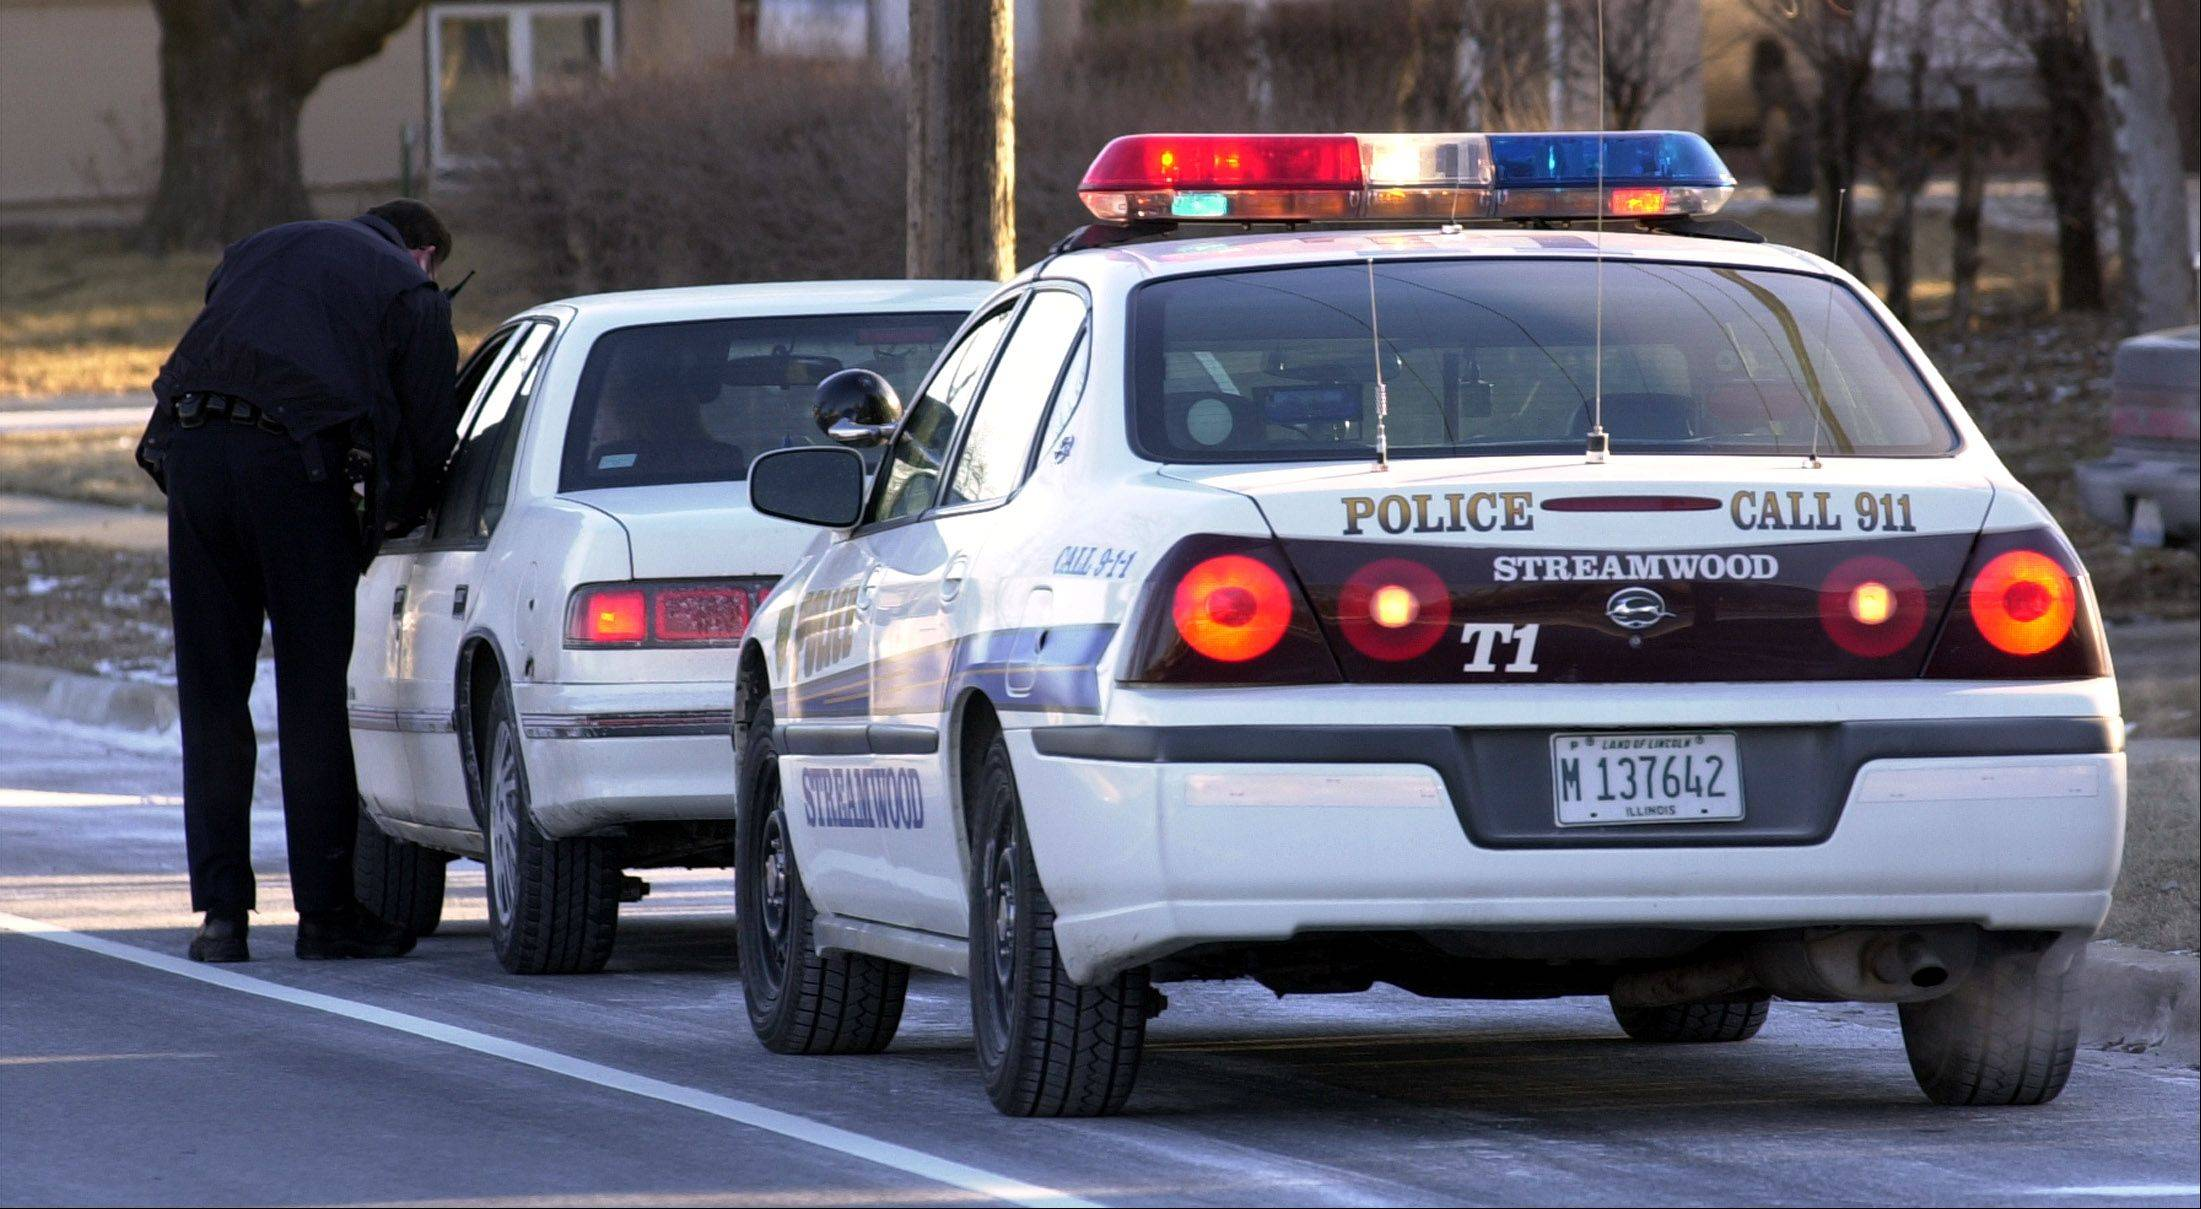 Streamwood police spent more per hour than 38 other suburban departments during the 2011 Labor Day enhanced traffic enforcement campaign, according to Illinois Department of Transportation data.